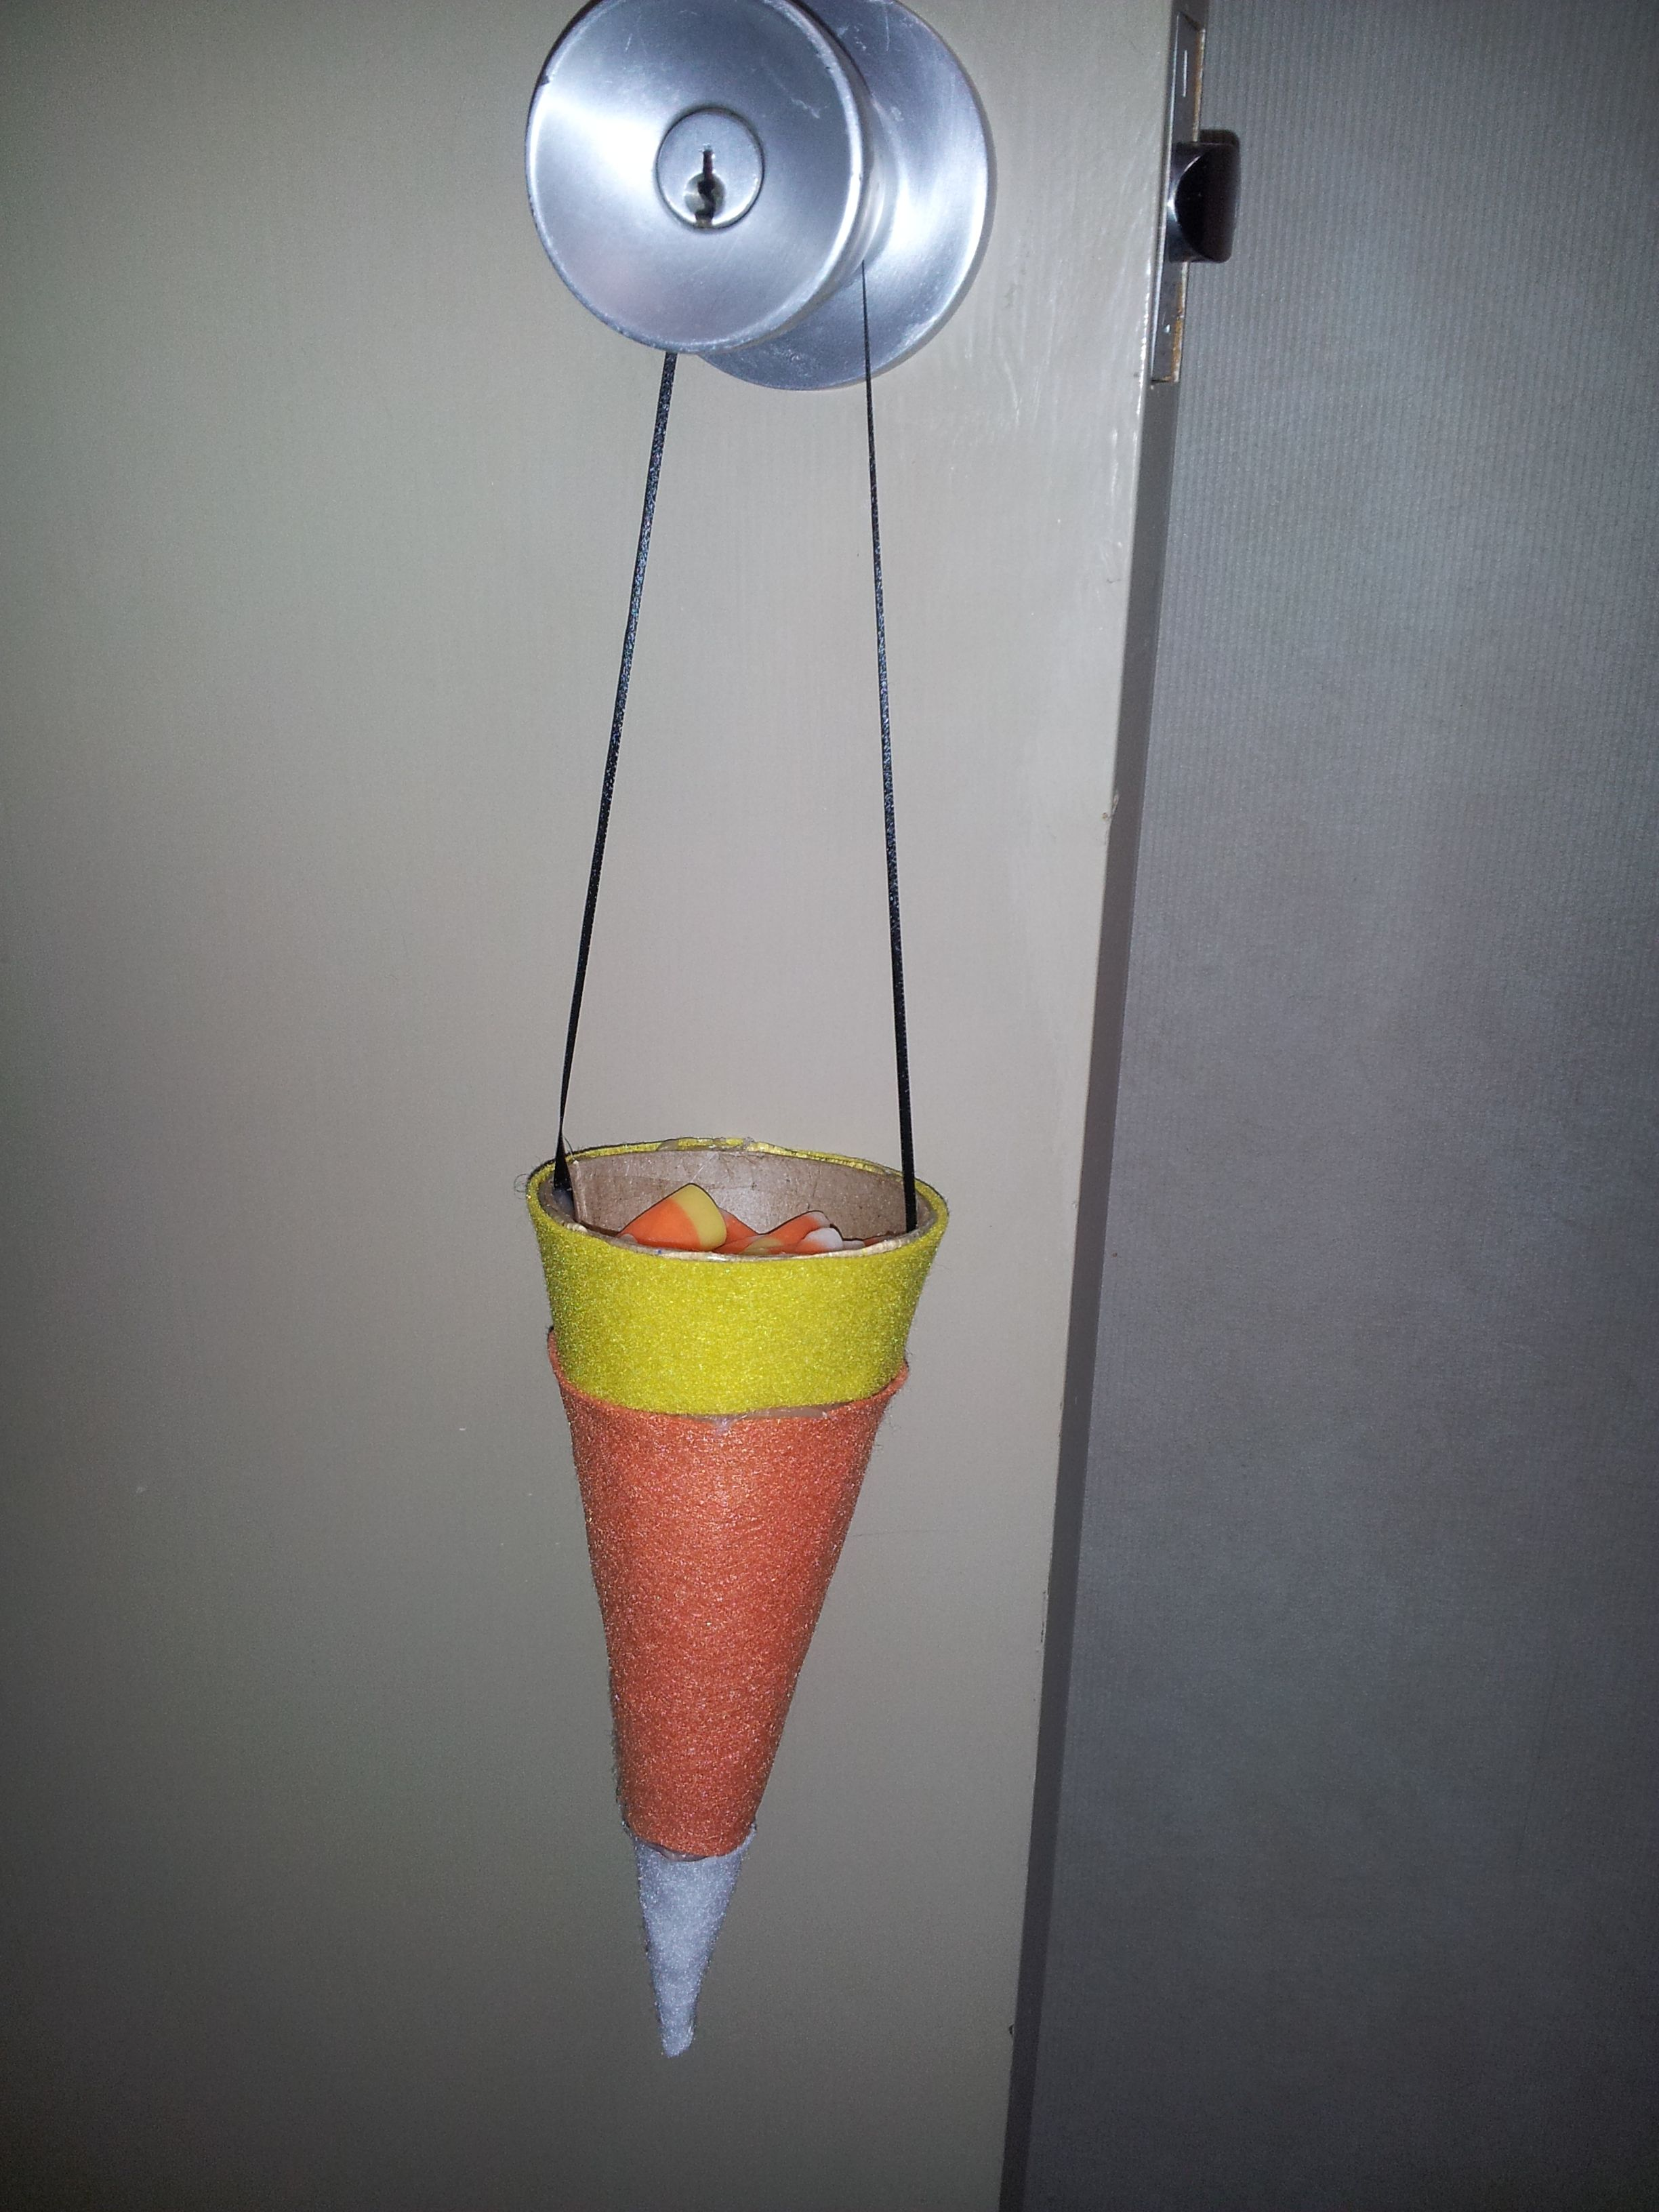 This is a cone I covered with felt to create a candy corn holder for Halloween.